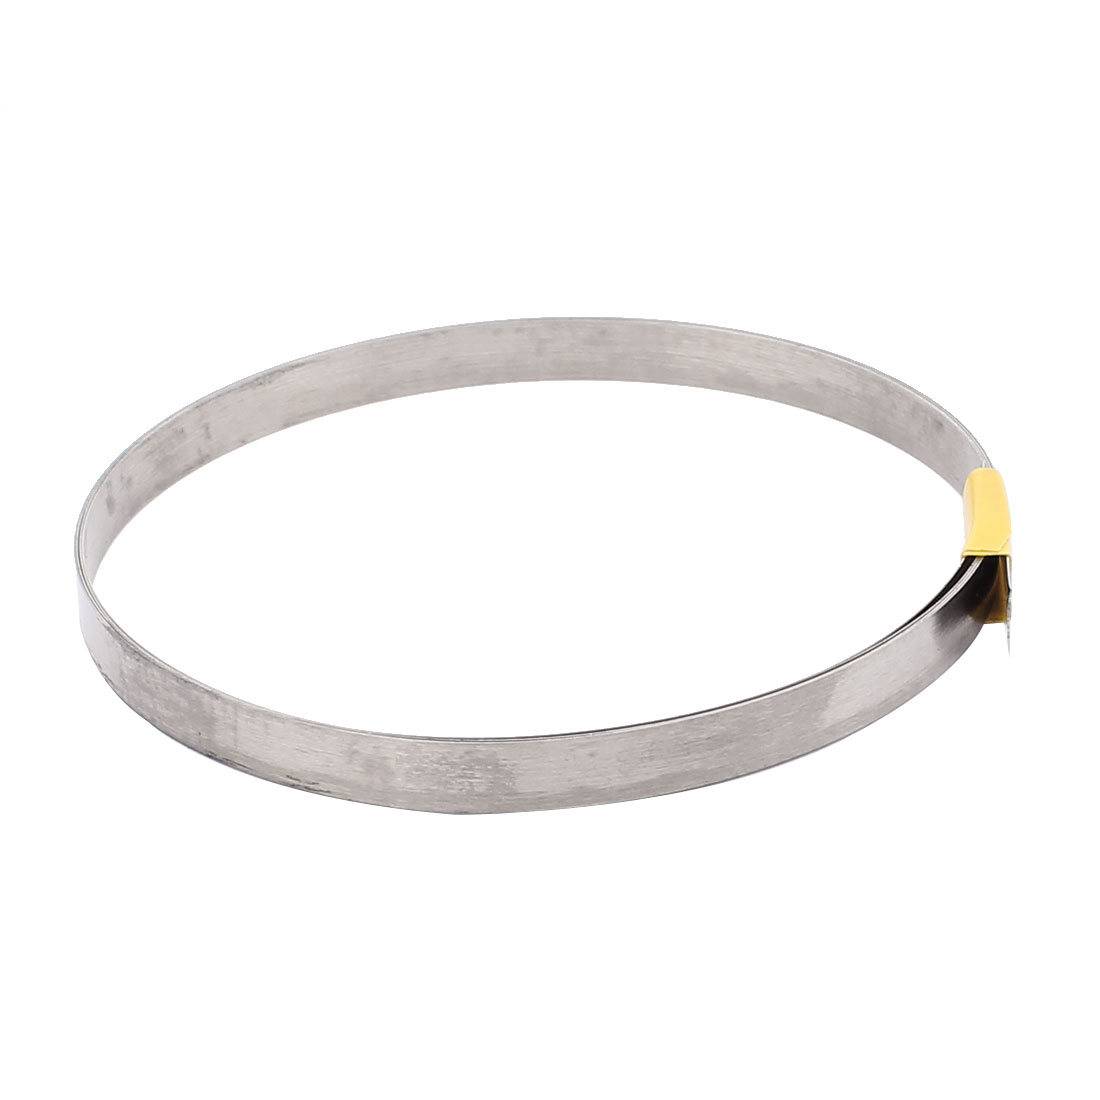 1M 3.3Ft 0.2x6mm Nichrome Flat Heater Wire for Heating Elements